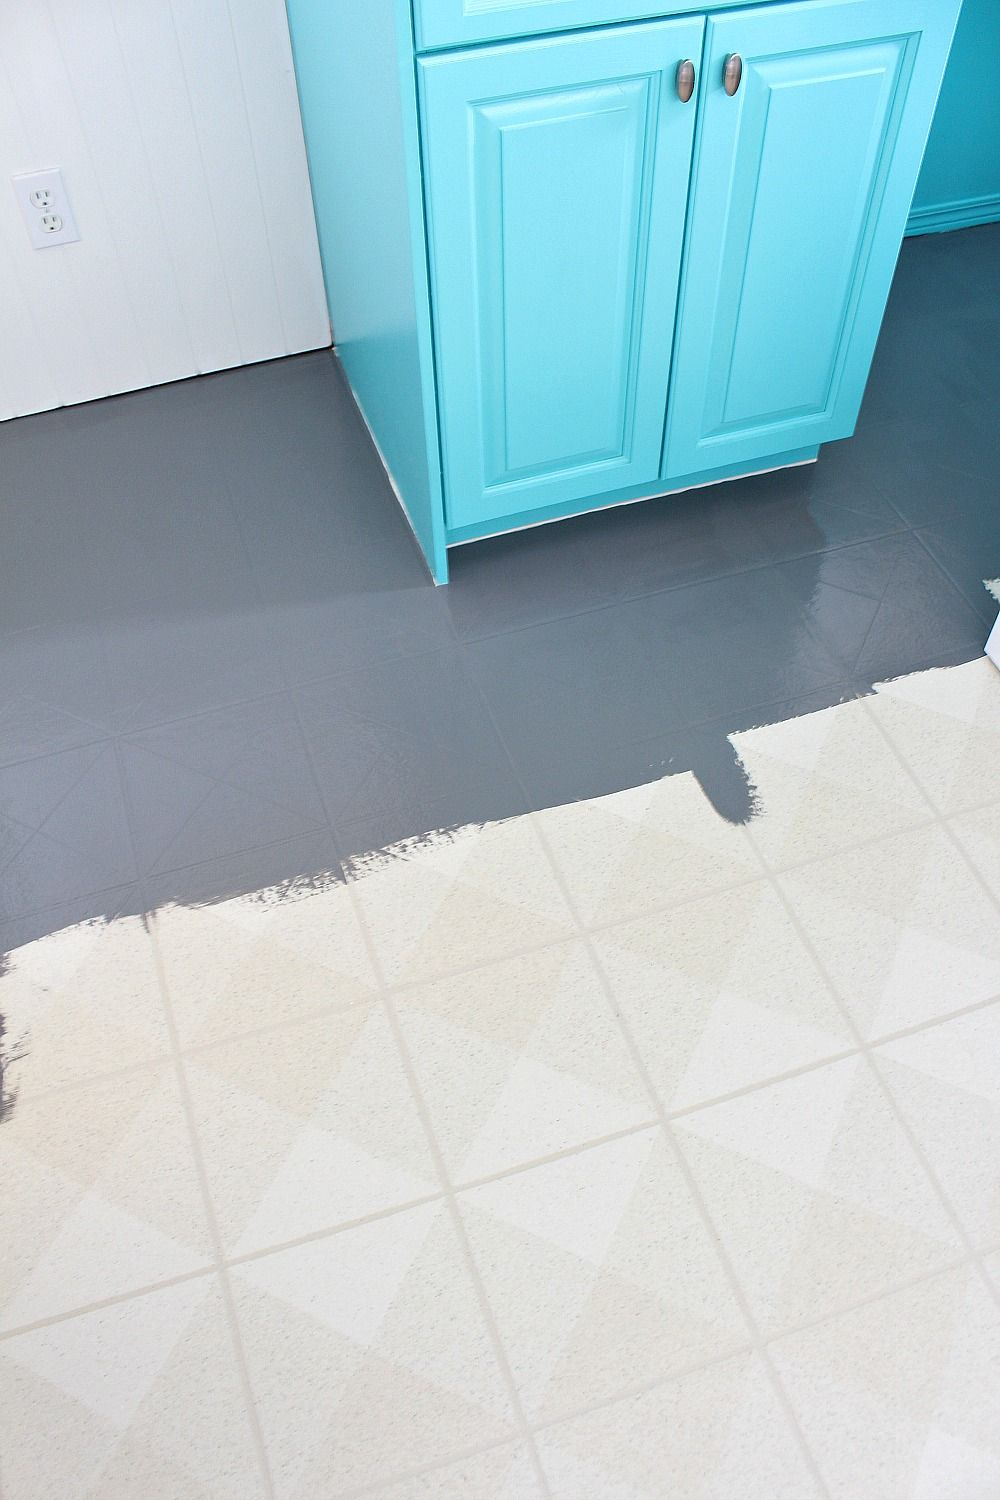 How To Paint A Vinyl Floor Diy Painted Vinyl Floors